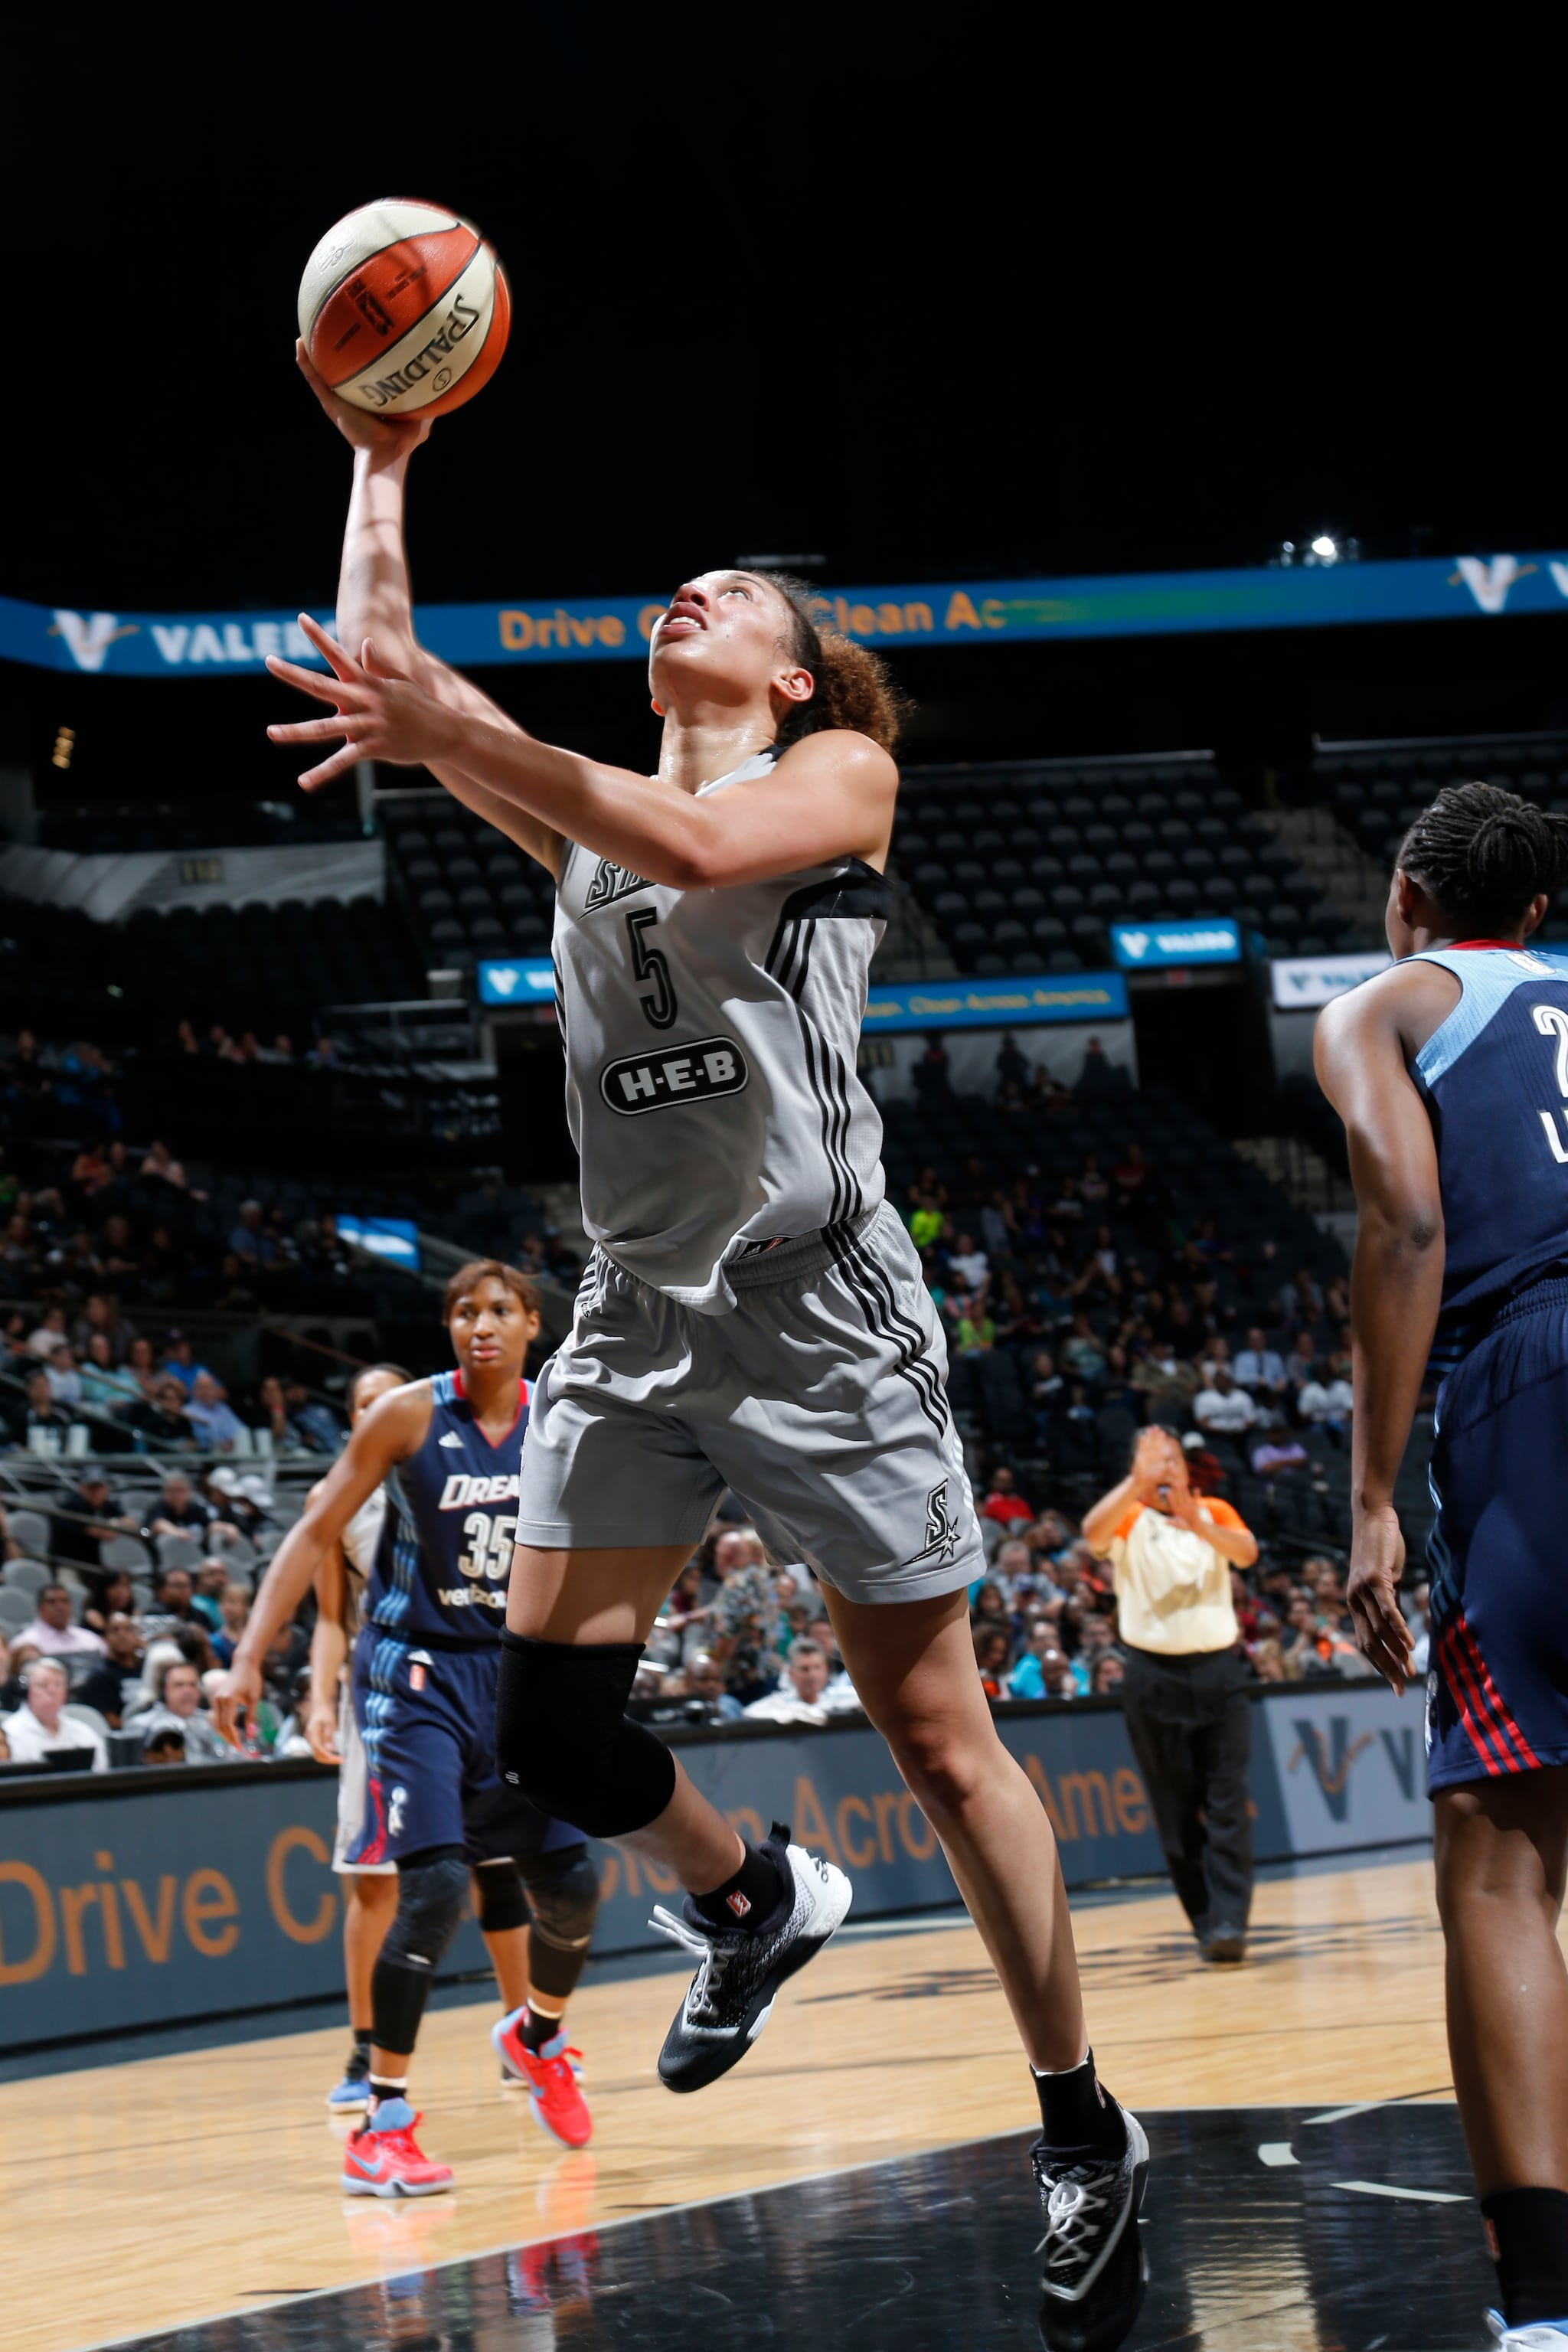 SAN ANTONIO, TX - MAY 14: Dearica Hamby #5 of the San Antonio Stars goes for the lay up against the Atlanta Dream during the game on May 14, 2016 at AT&T Center in San Antonio, Texas. NOTE TO USER: User expressly acknowledges and agrees that, by downloading and or using this Photograph, user is consenting to the terms and conditions of the Getty Images License Agreement. Mandatory Copyright Notice: Copyright 2016 NBAE (Photo by Chris Covatta/NBAE via Getty Images)